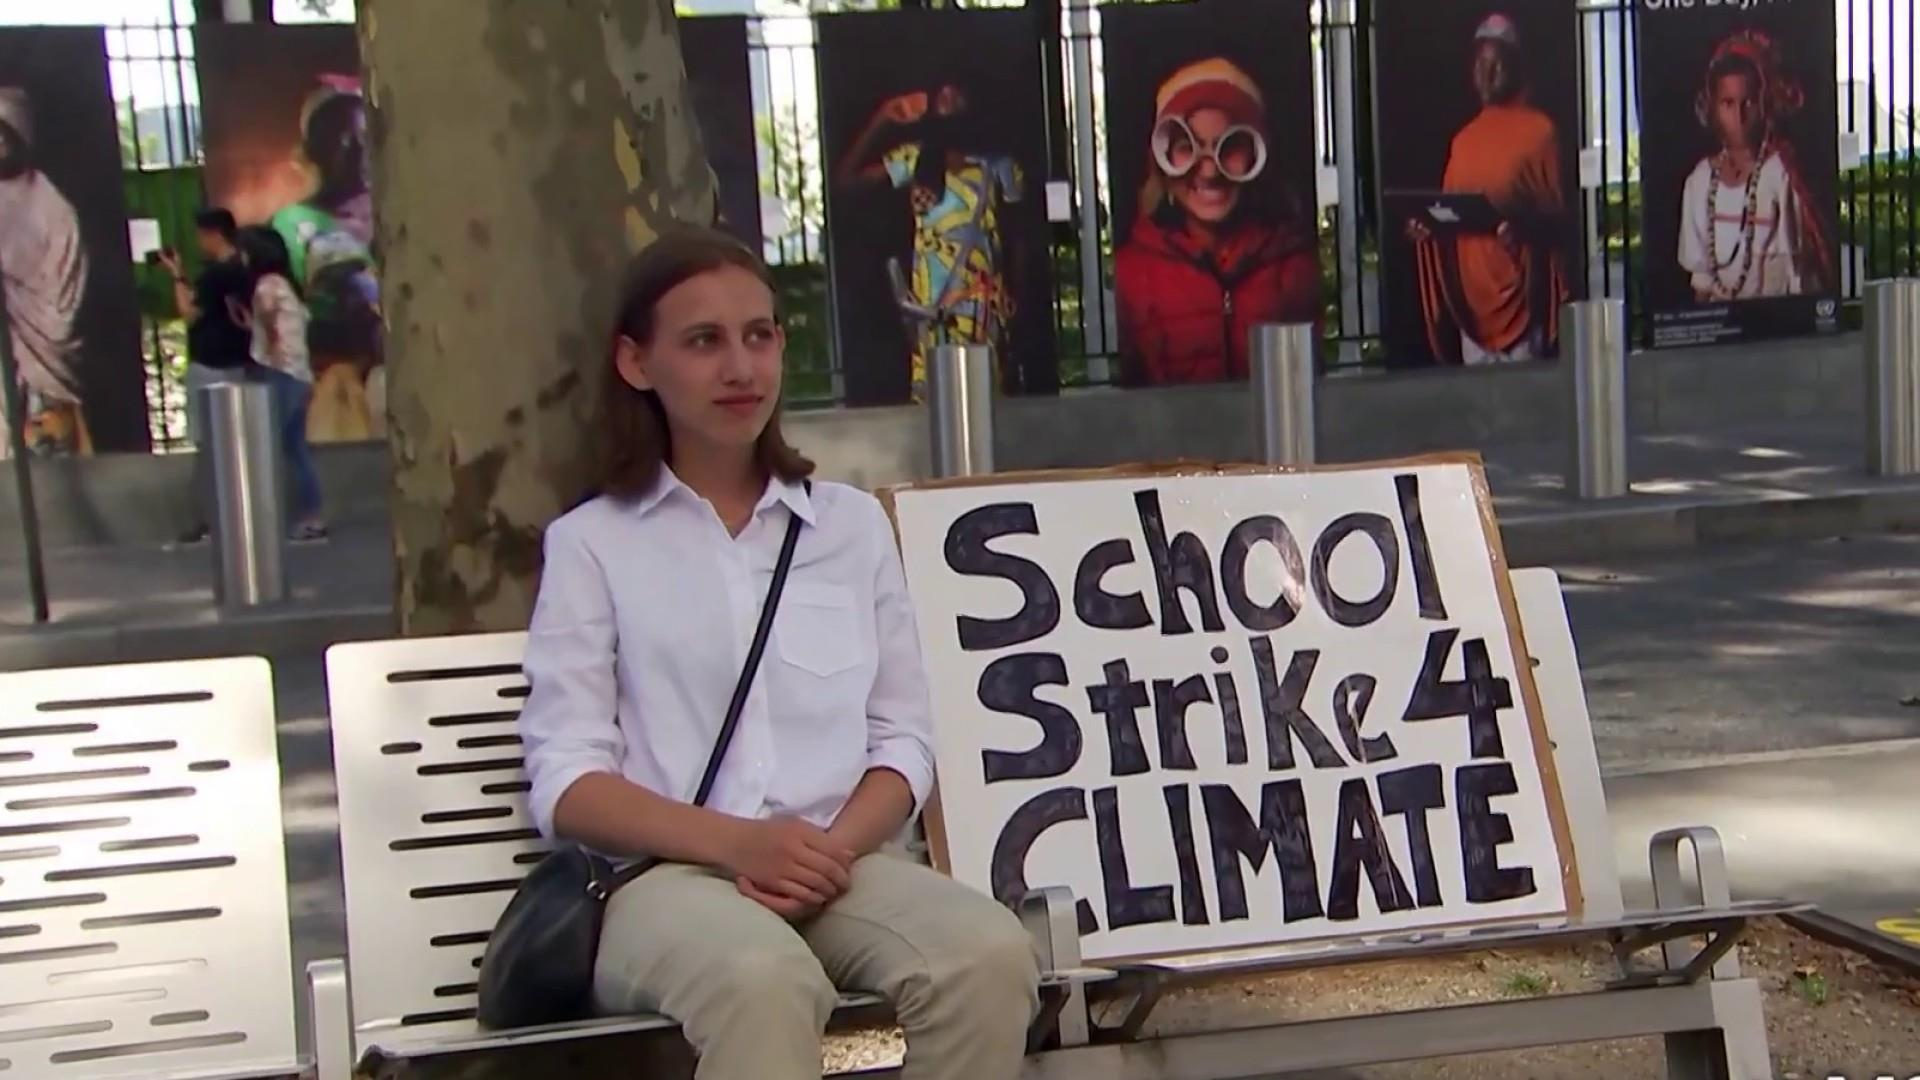 Students taking lead on protesting climate crisis